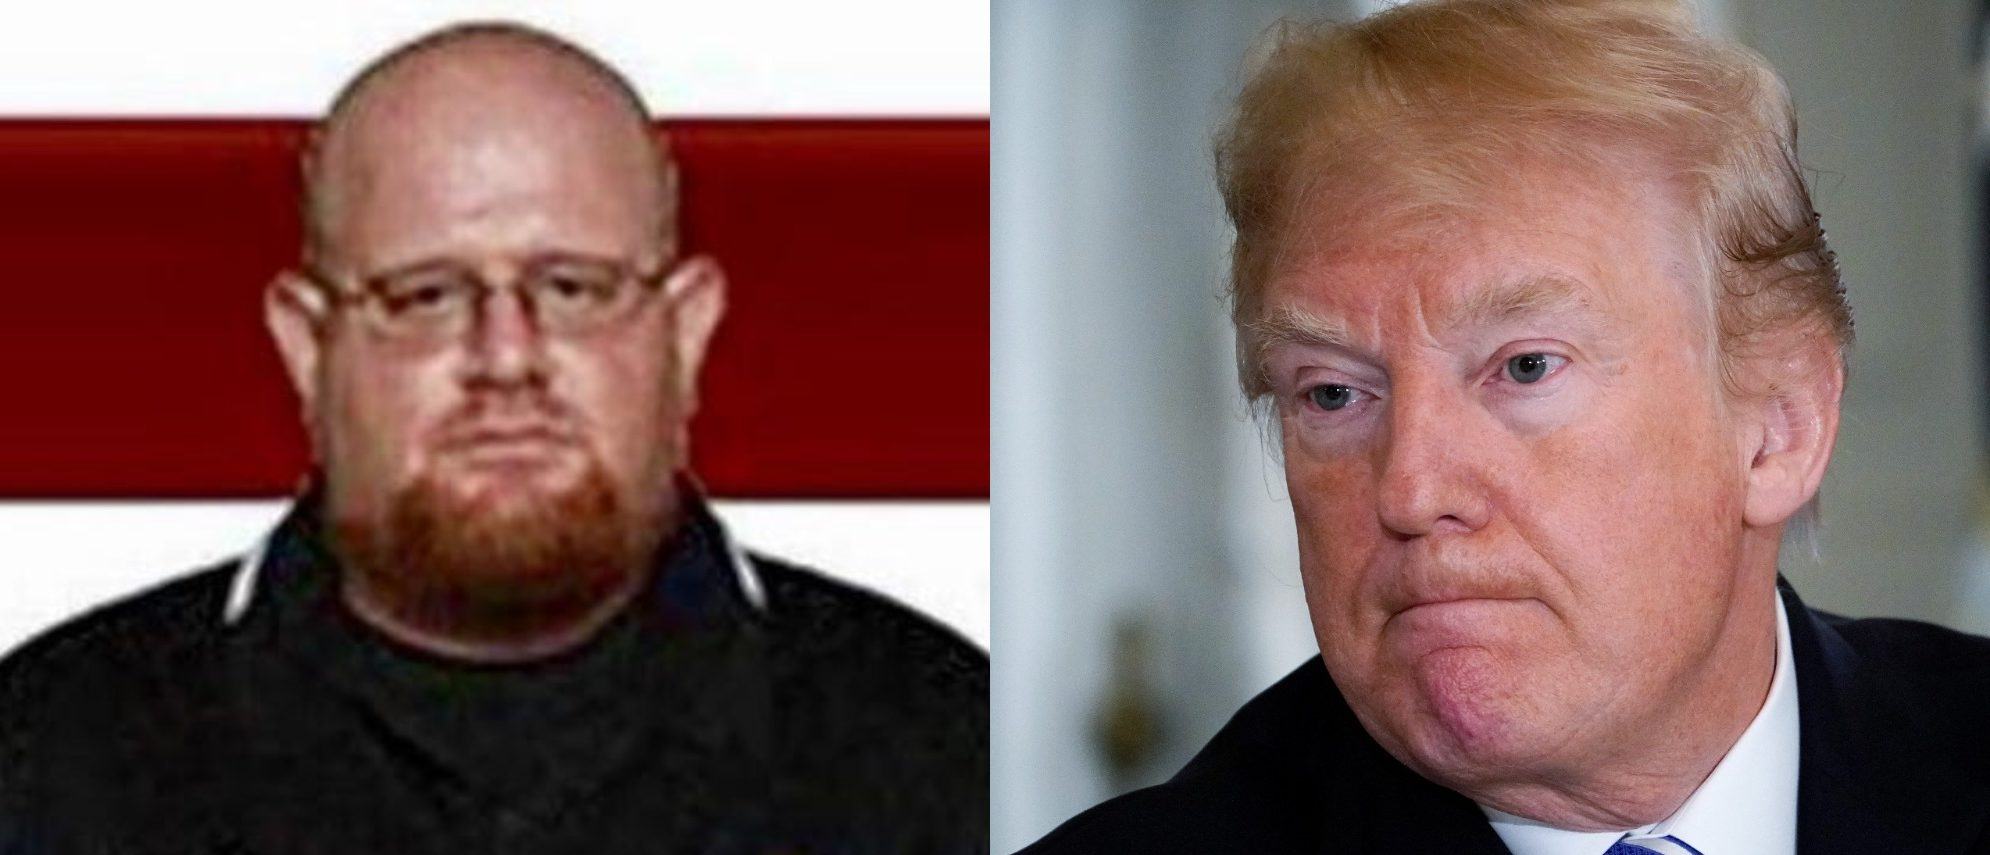 """One of the heroes who lost his life during the Florida school shooting this week appears to have been a Trump supporter. These are the Facebook """"likes"""" of the late football coachAaron Feis, who died using his body as a human shield to protect students from flying bullets atStoneman Douglas High School. A survey ofFeis's …"""